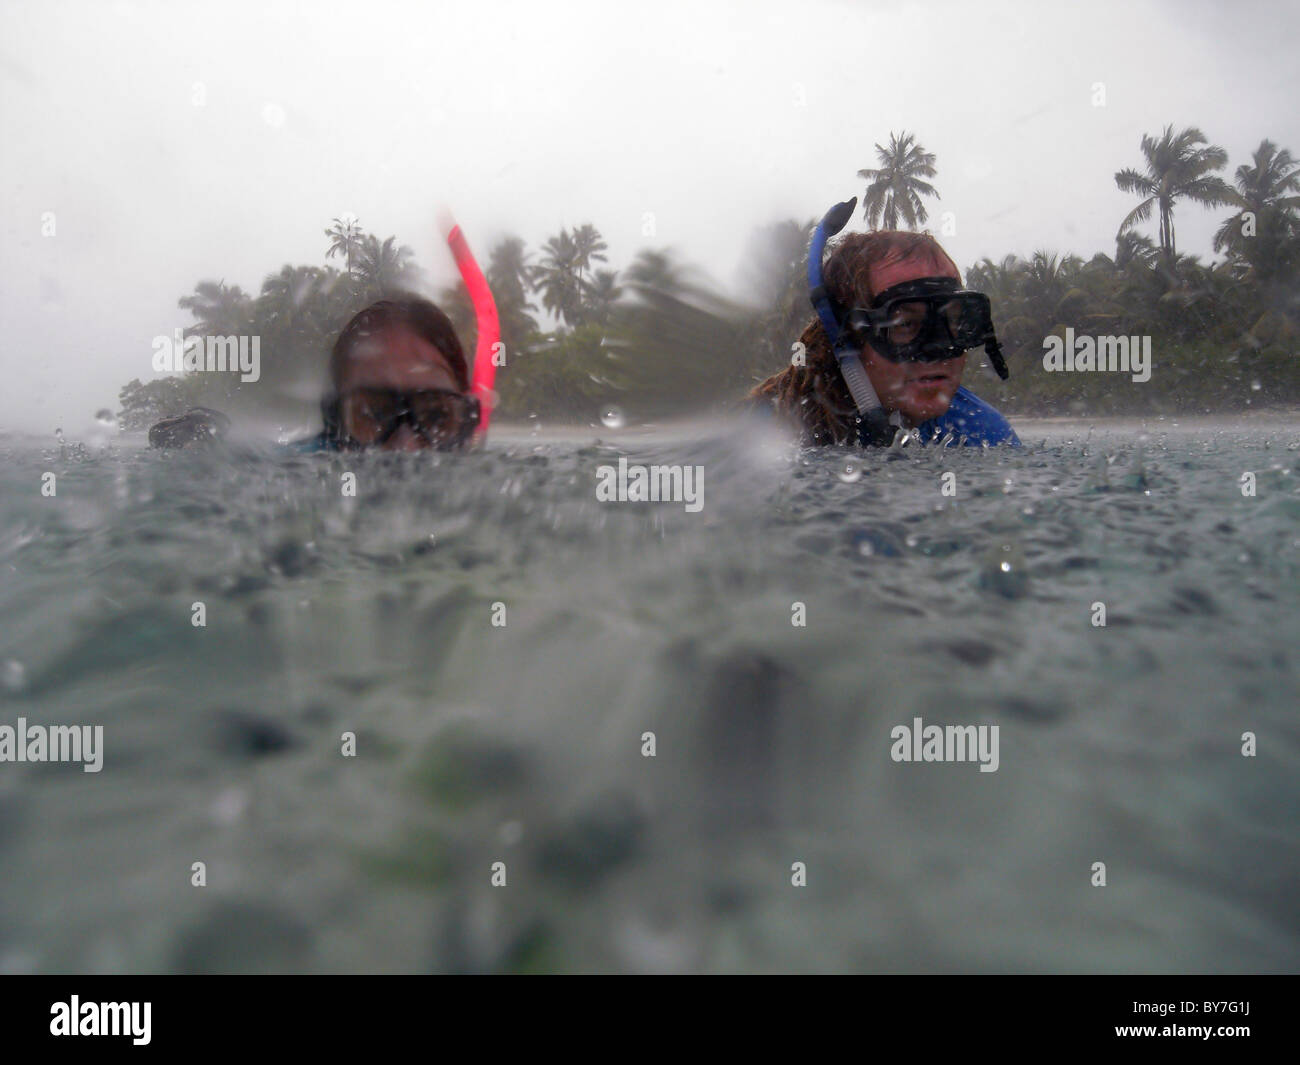 Snorkelling in the rain, Cocos Keeling atoll, Indian Ocean. No MR - Stock Image